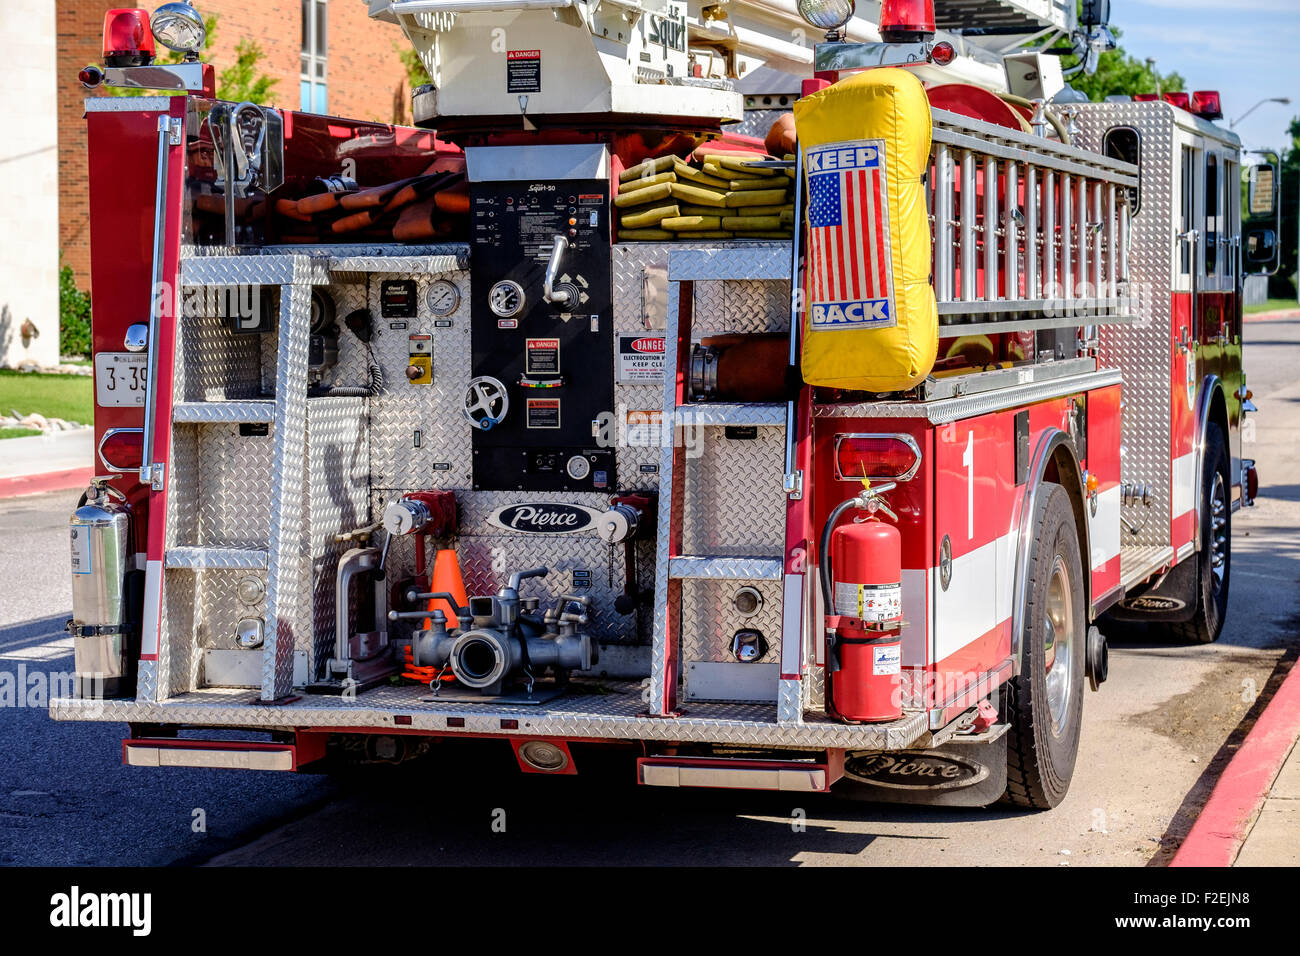 A fire engine showing the back end in Bethany, Oklahoma, USA - Stock Image